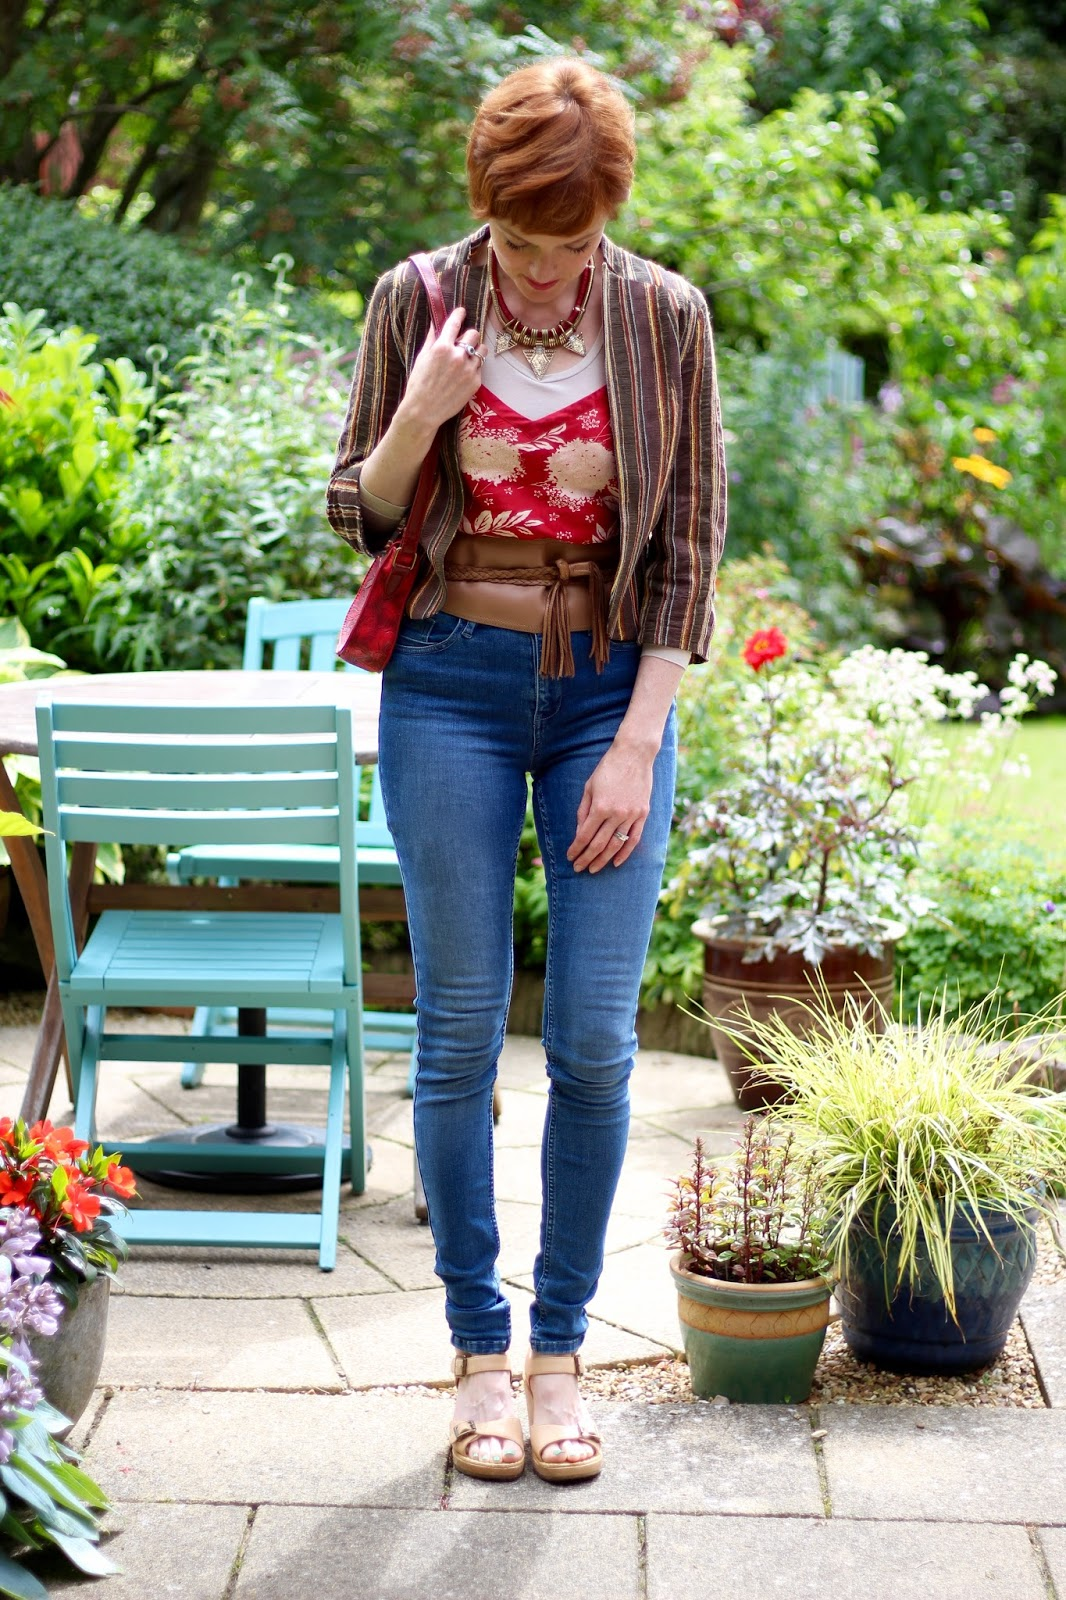 Fake Fabulous | Skinny jeans, wide belt, tassels, cropped jacket and buckle two-part sandals, over 40.